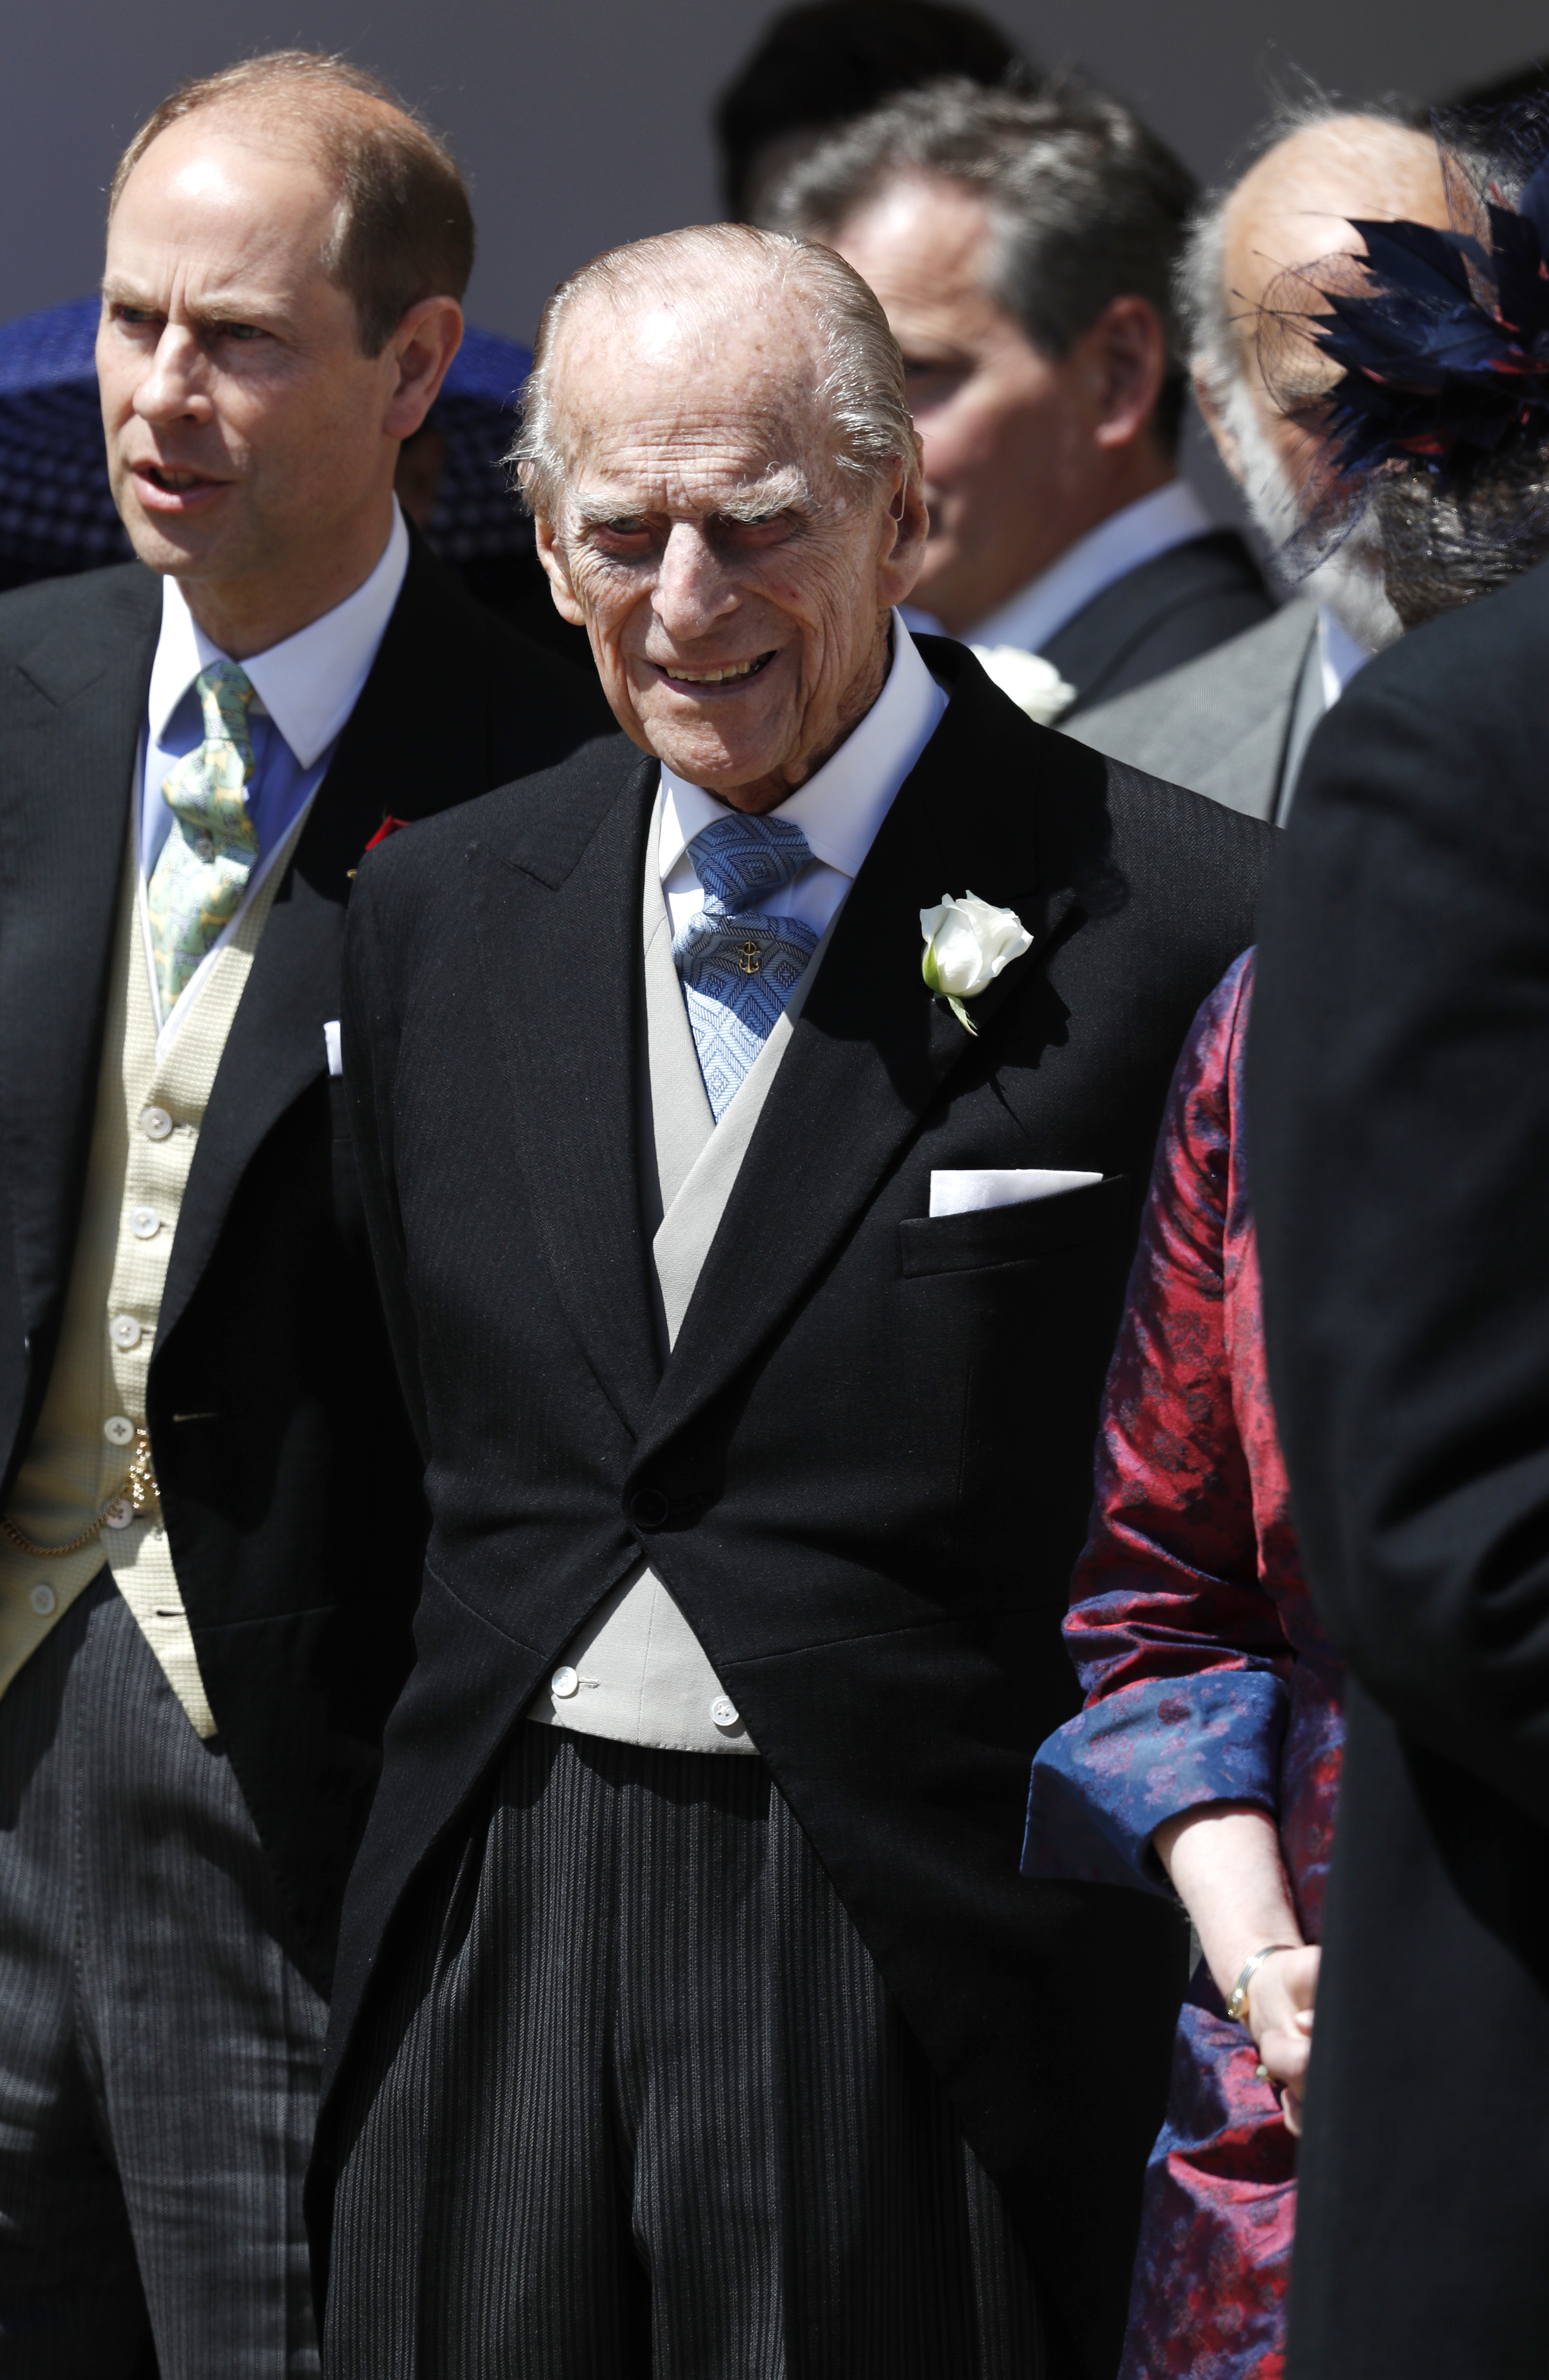 Prince Philip Cracked Rib Royal Wedding Getty Images